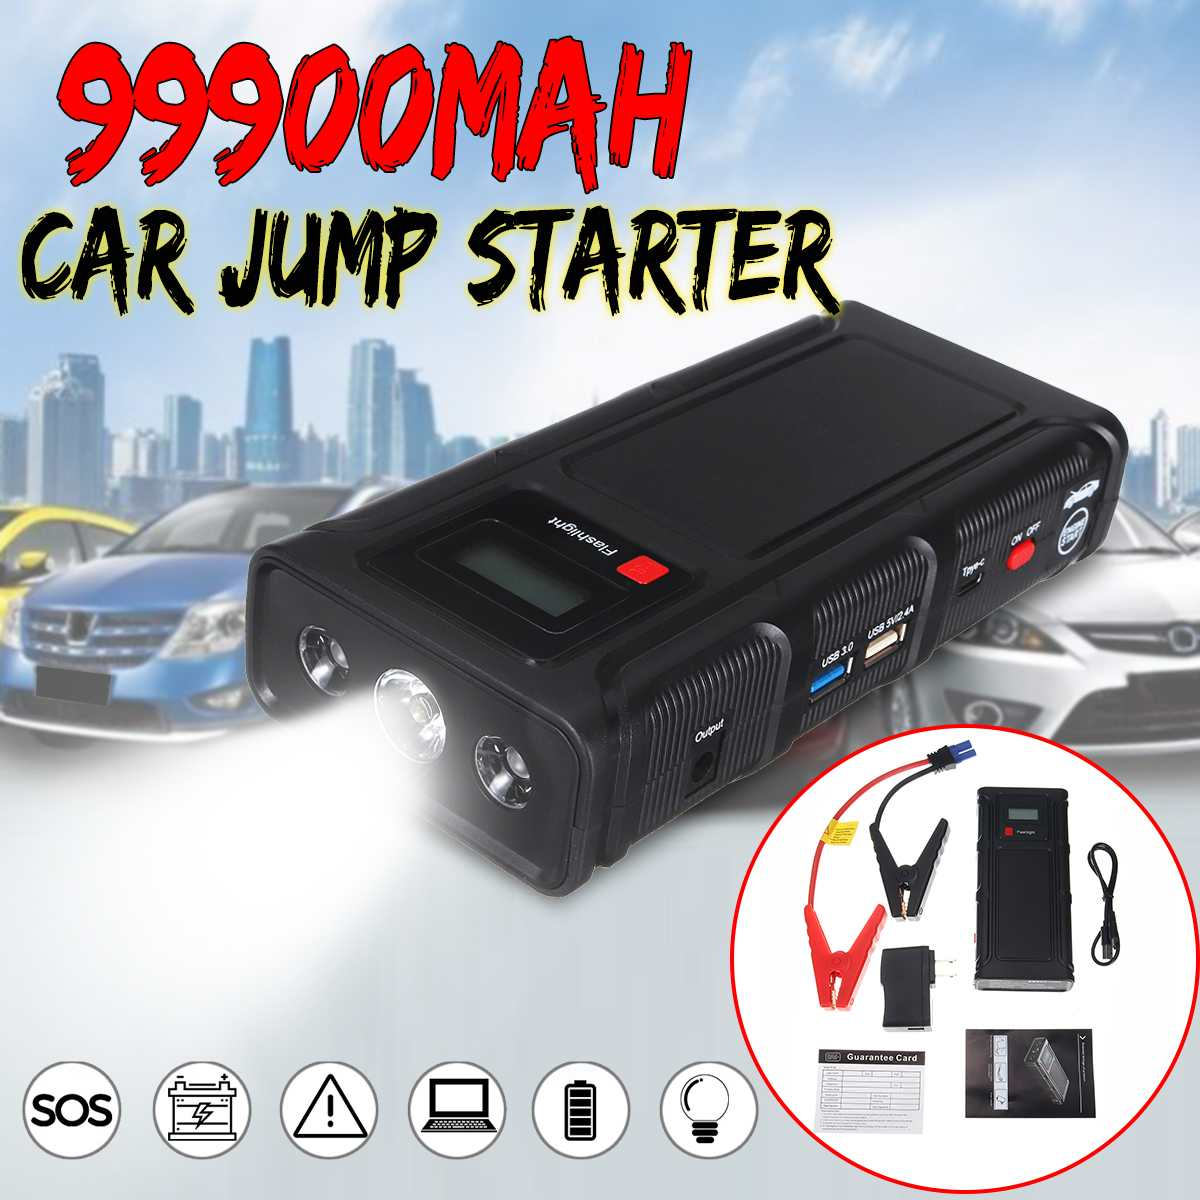 Charger Car-Starter Power-Bank Buster Petrol-Diesel Portable 99900mah-Car 12V Ce title=